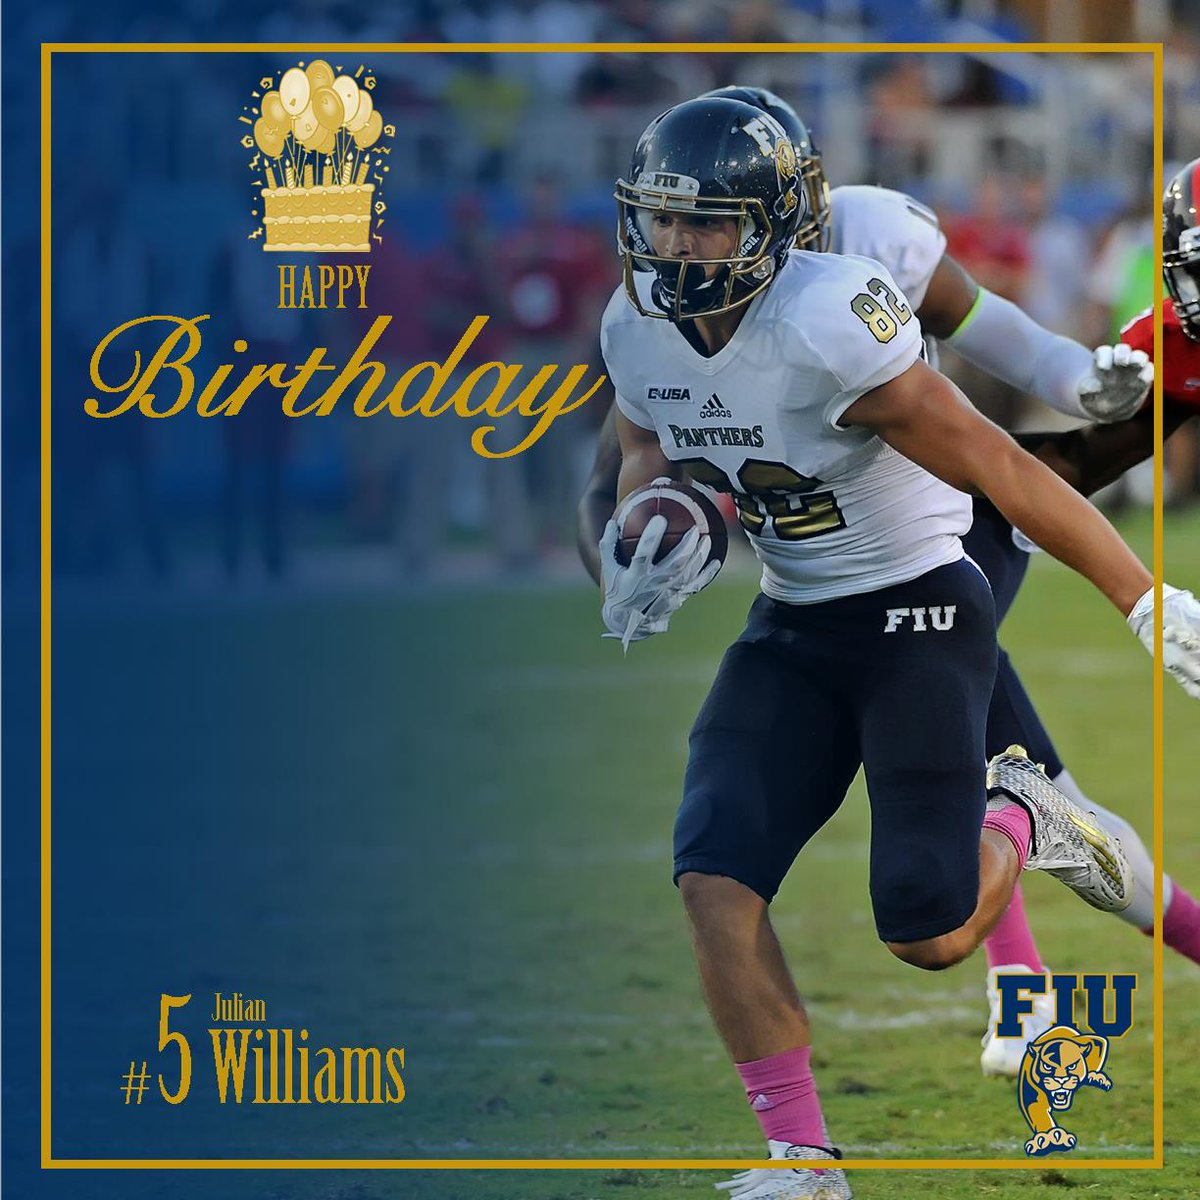 Fiu Football On Twitter Happy Birthday To Fiu Wide Receiver Julian